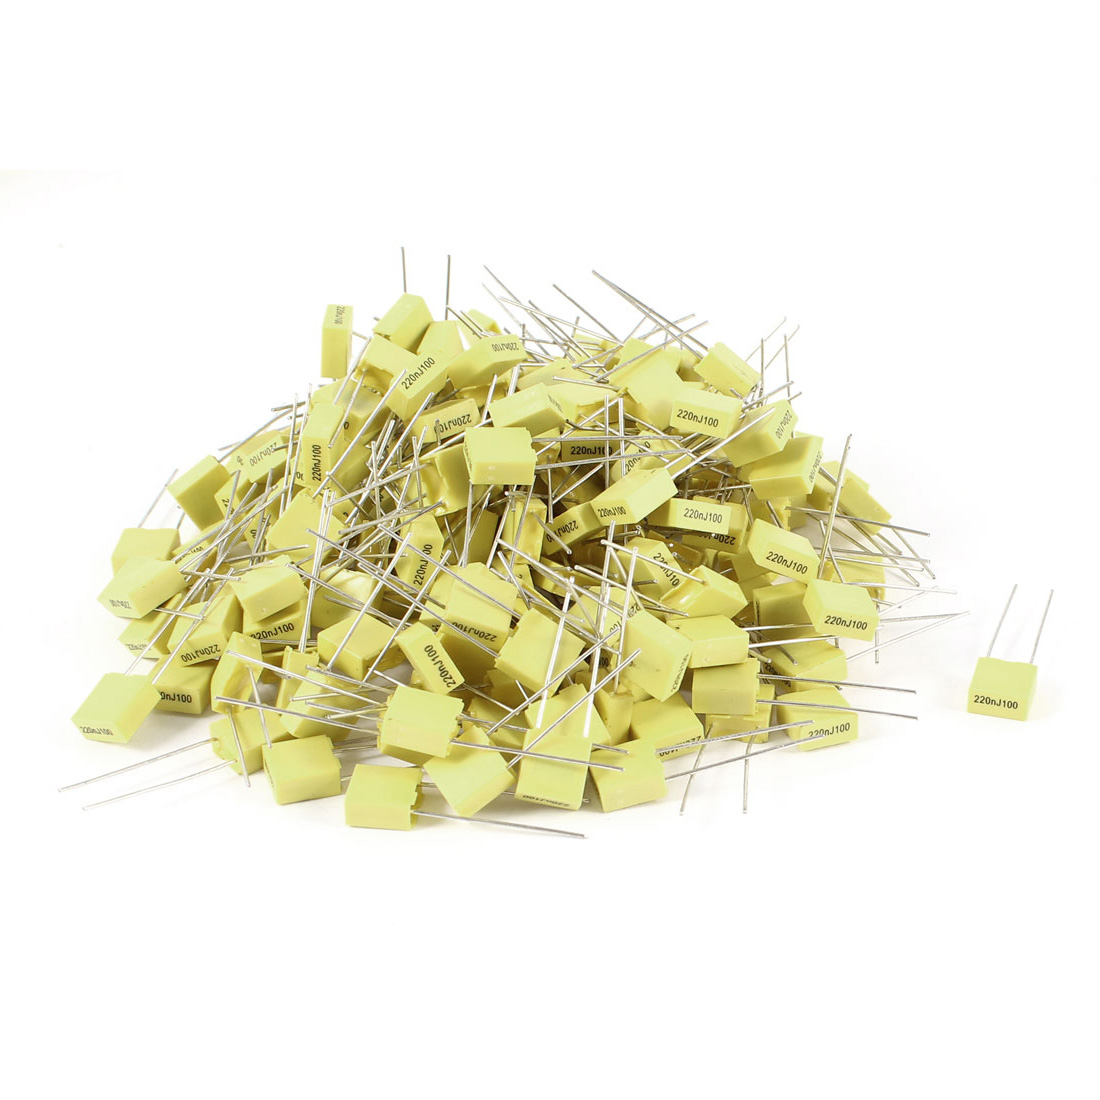 200 Pcs 100V 0.22uF 220NF Radial Lead Box Type Film Correction Capacitors